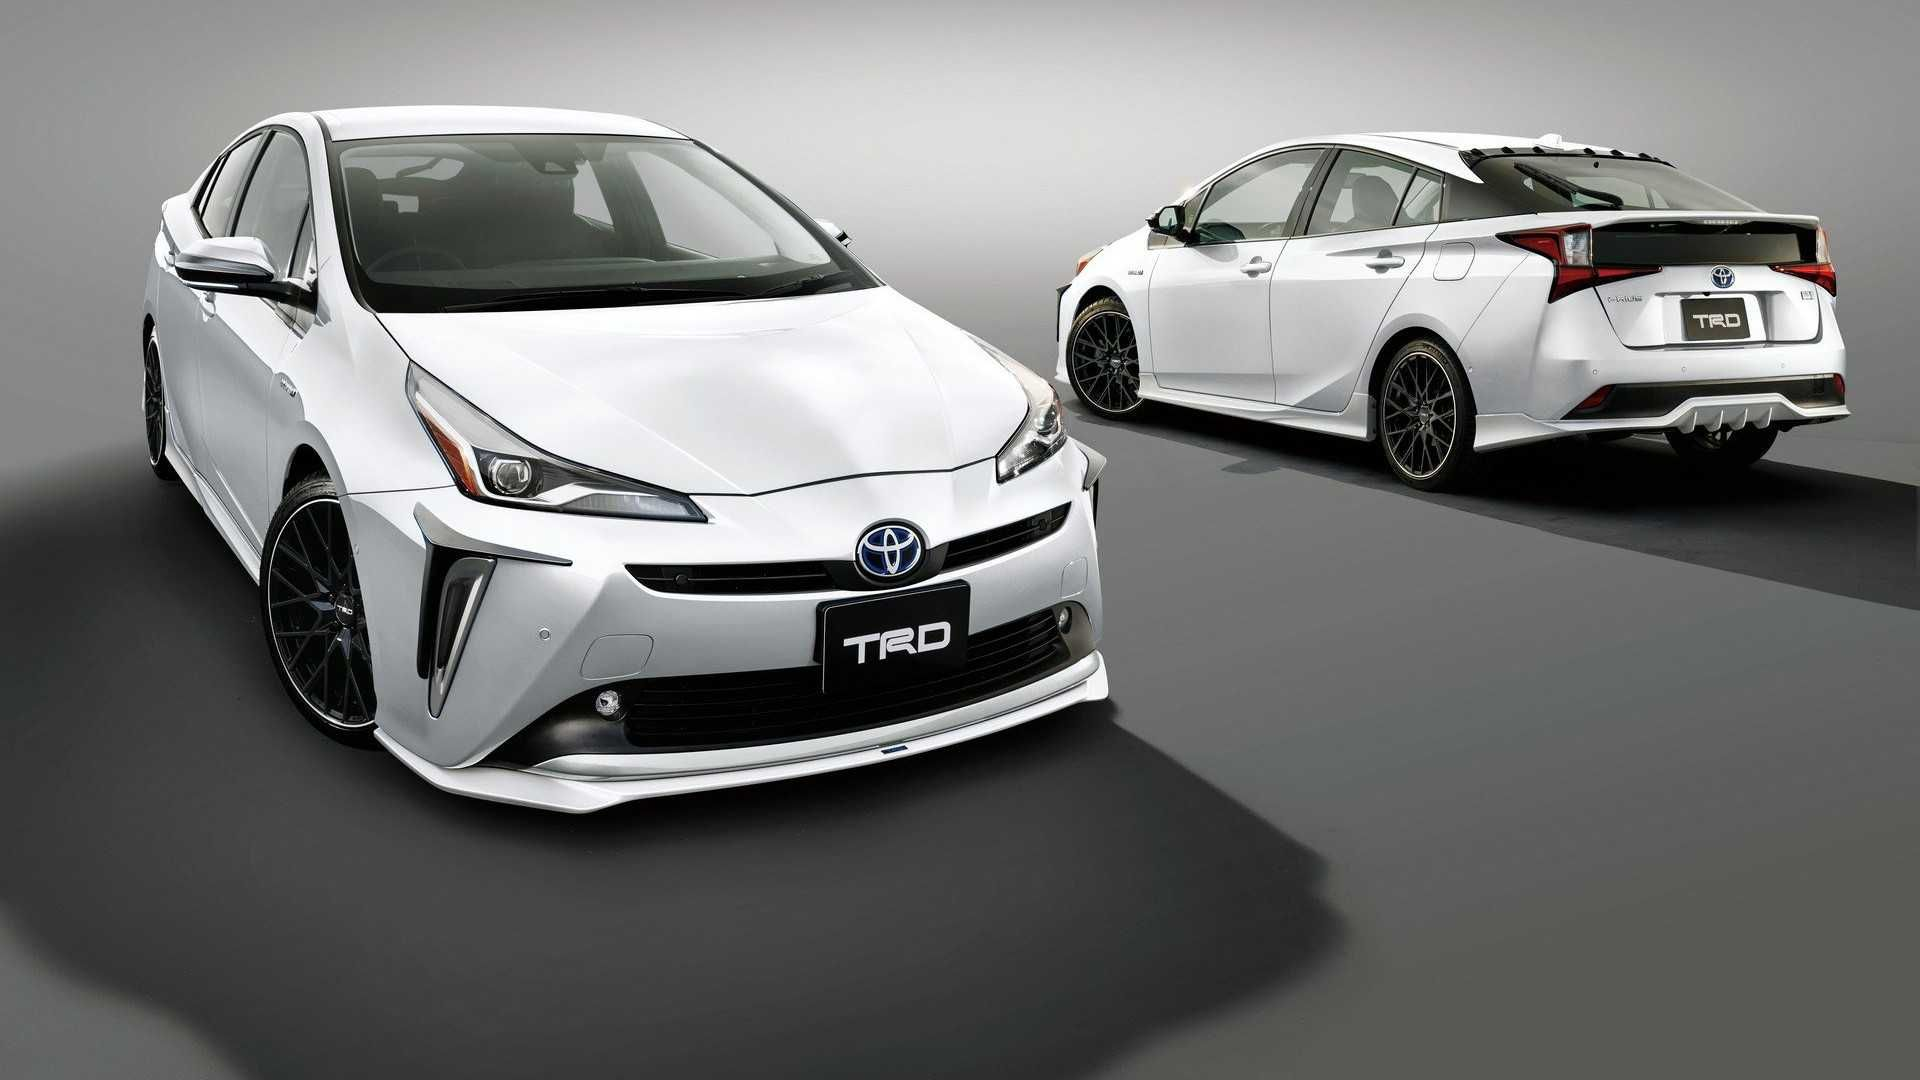 2019 Toyota Prius Gets Sporty Makeover From Trd Toyota Prius Prius